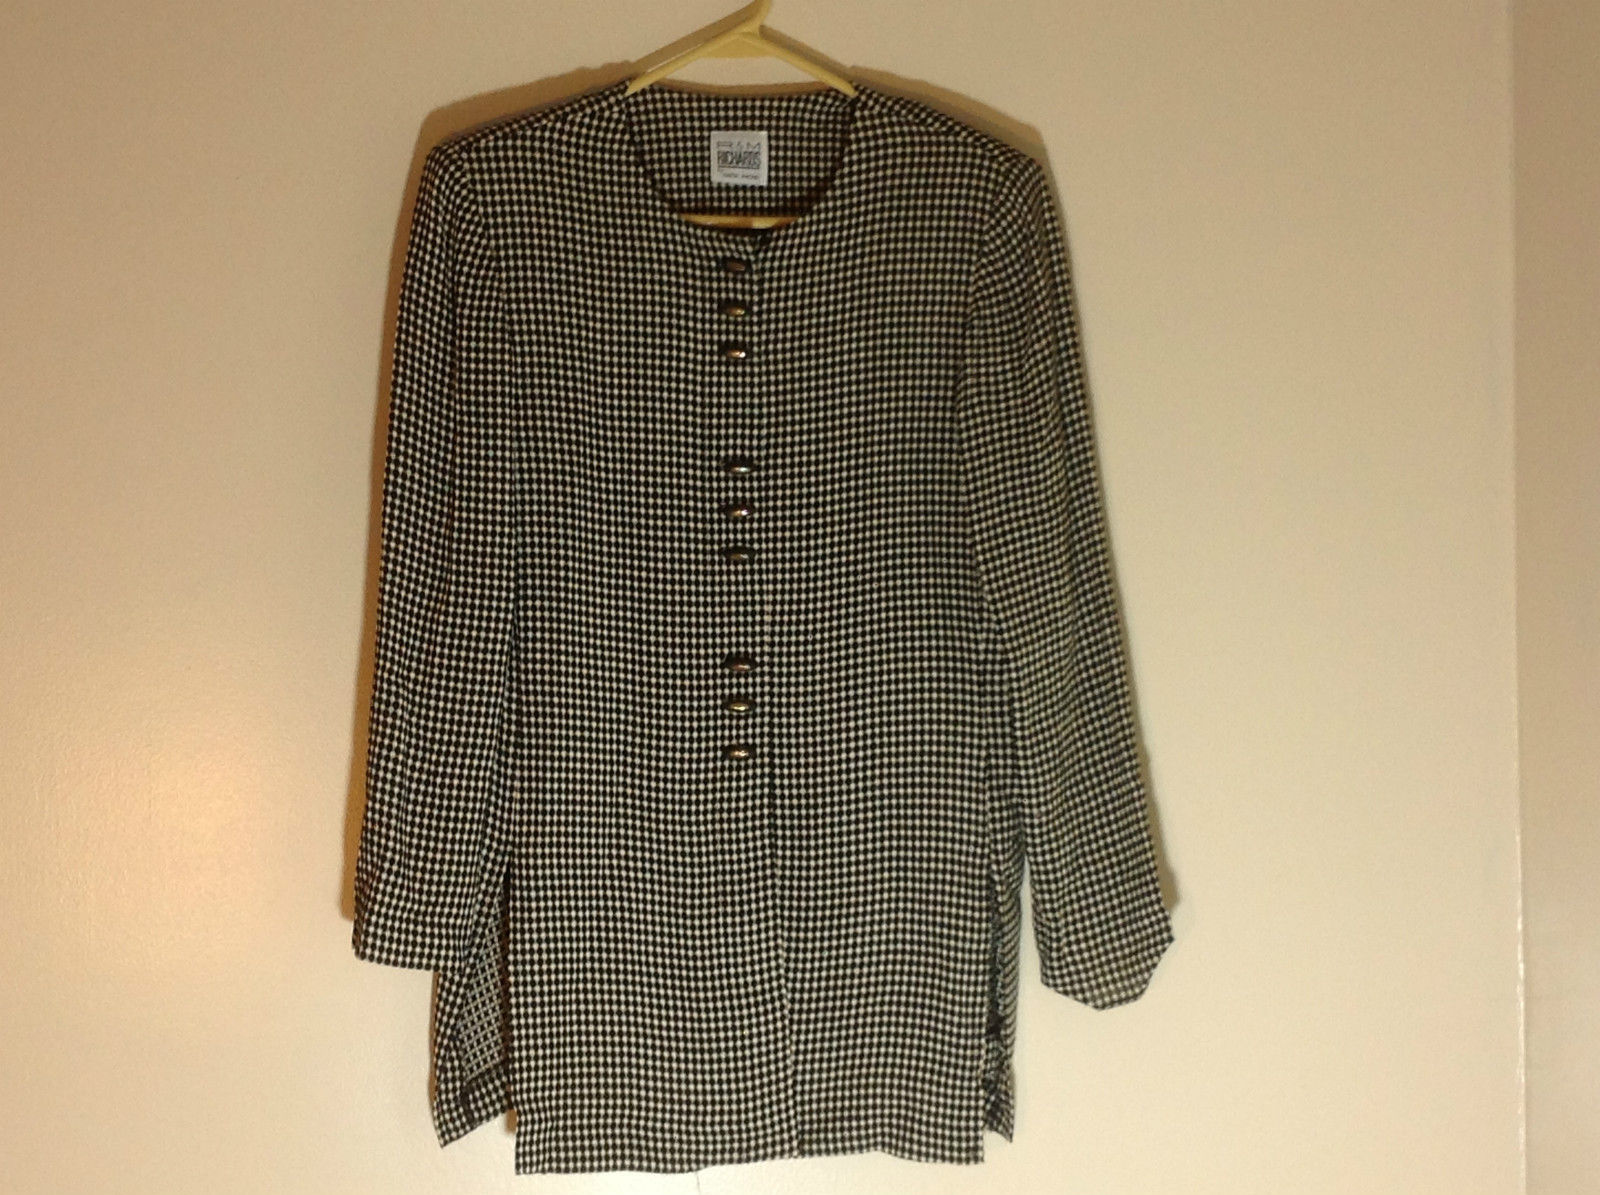 Very Pretty R & M Richards Black and White Printed Button Up Blouse Size 12P